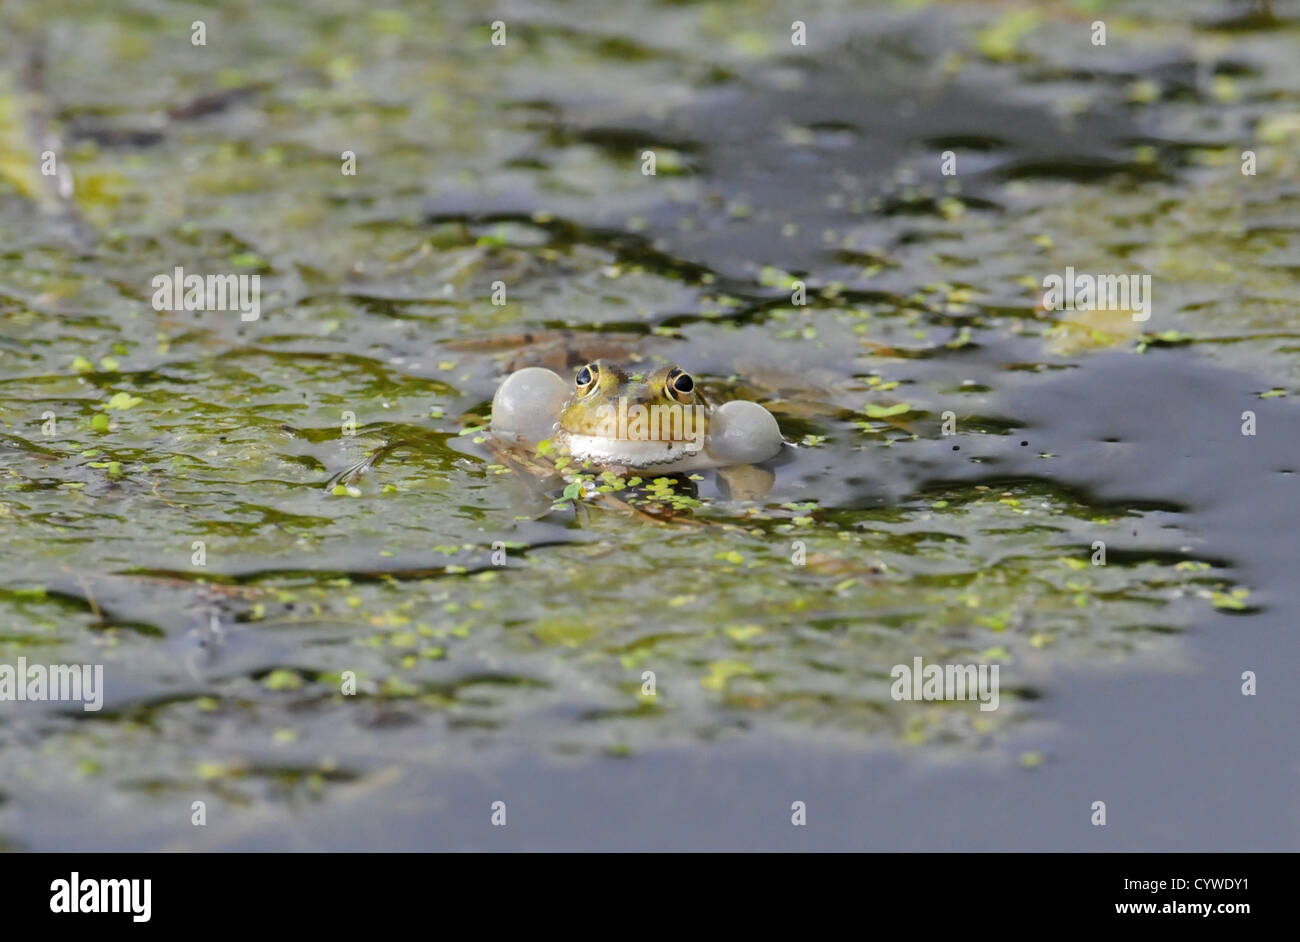 ADULT MALE EDIBLE  FROG, Rana esculenta  IN FULL CALLING DISPLAY WITH INFLATED VOCAL SACS. - Stock Image